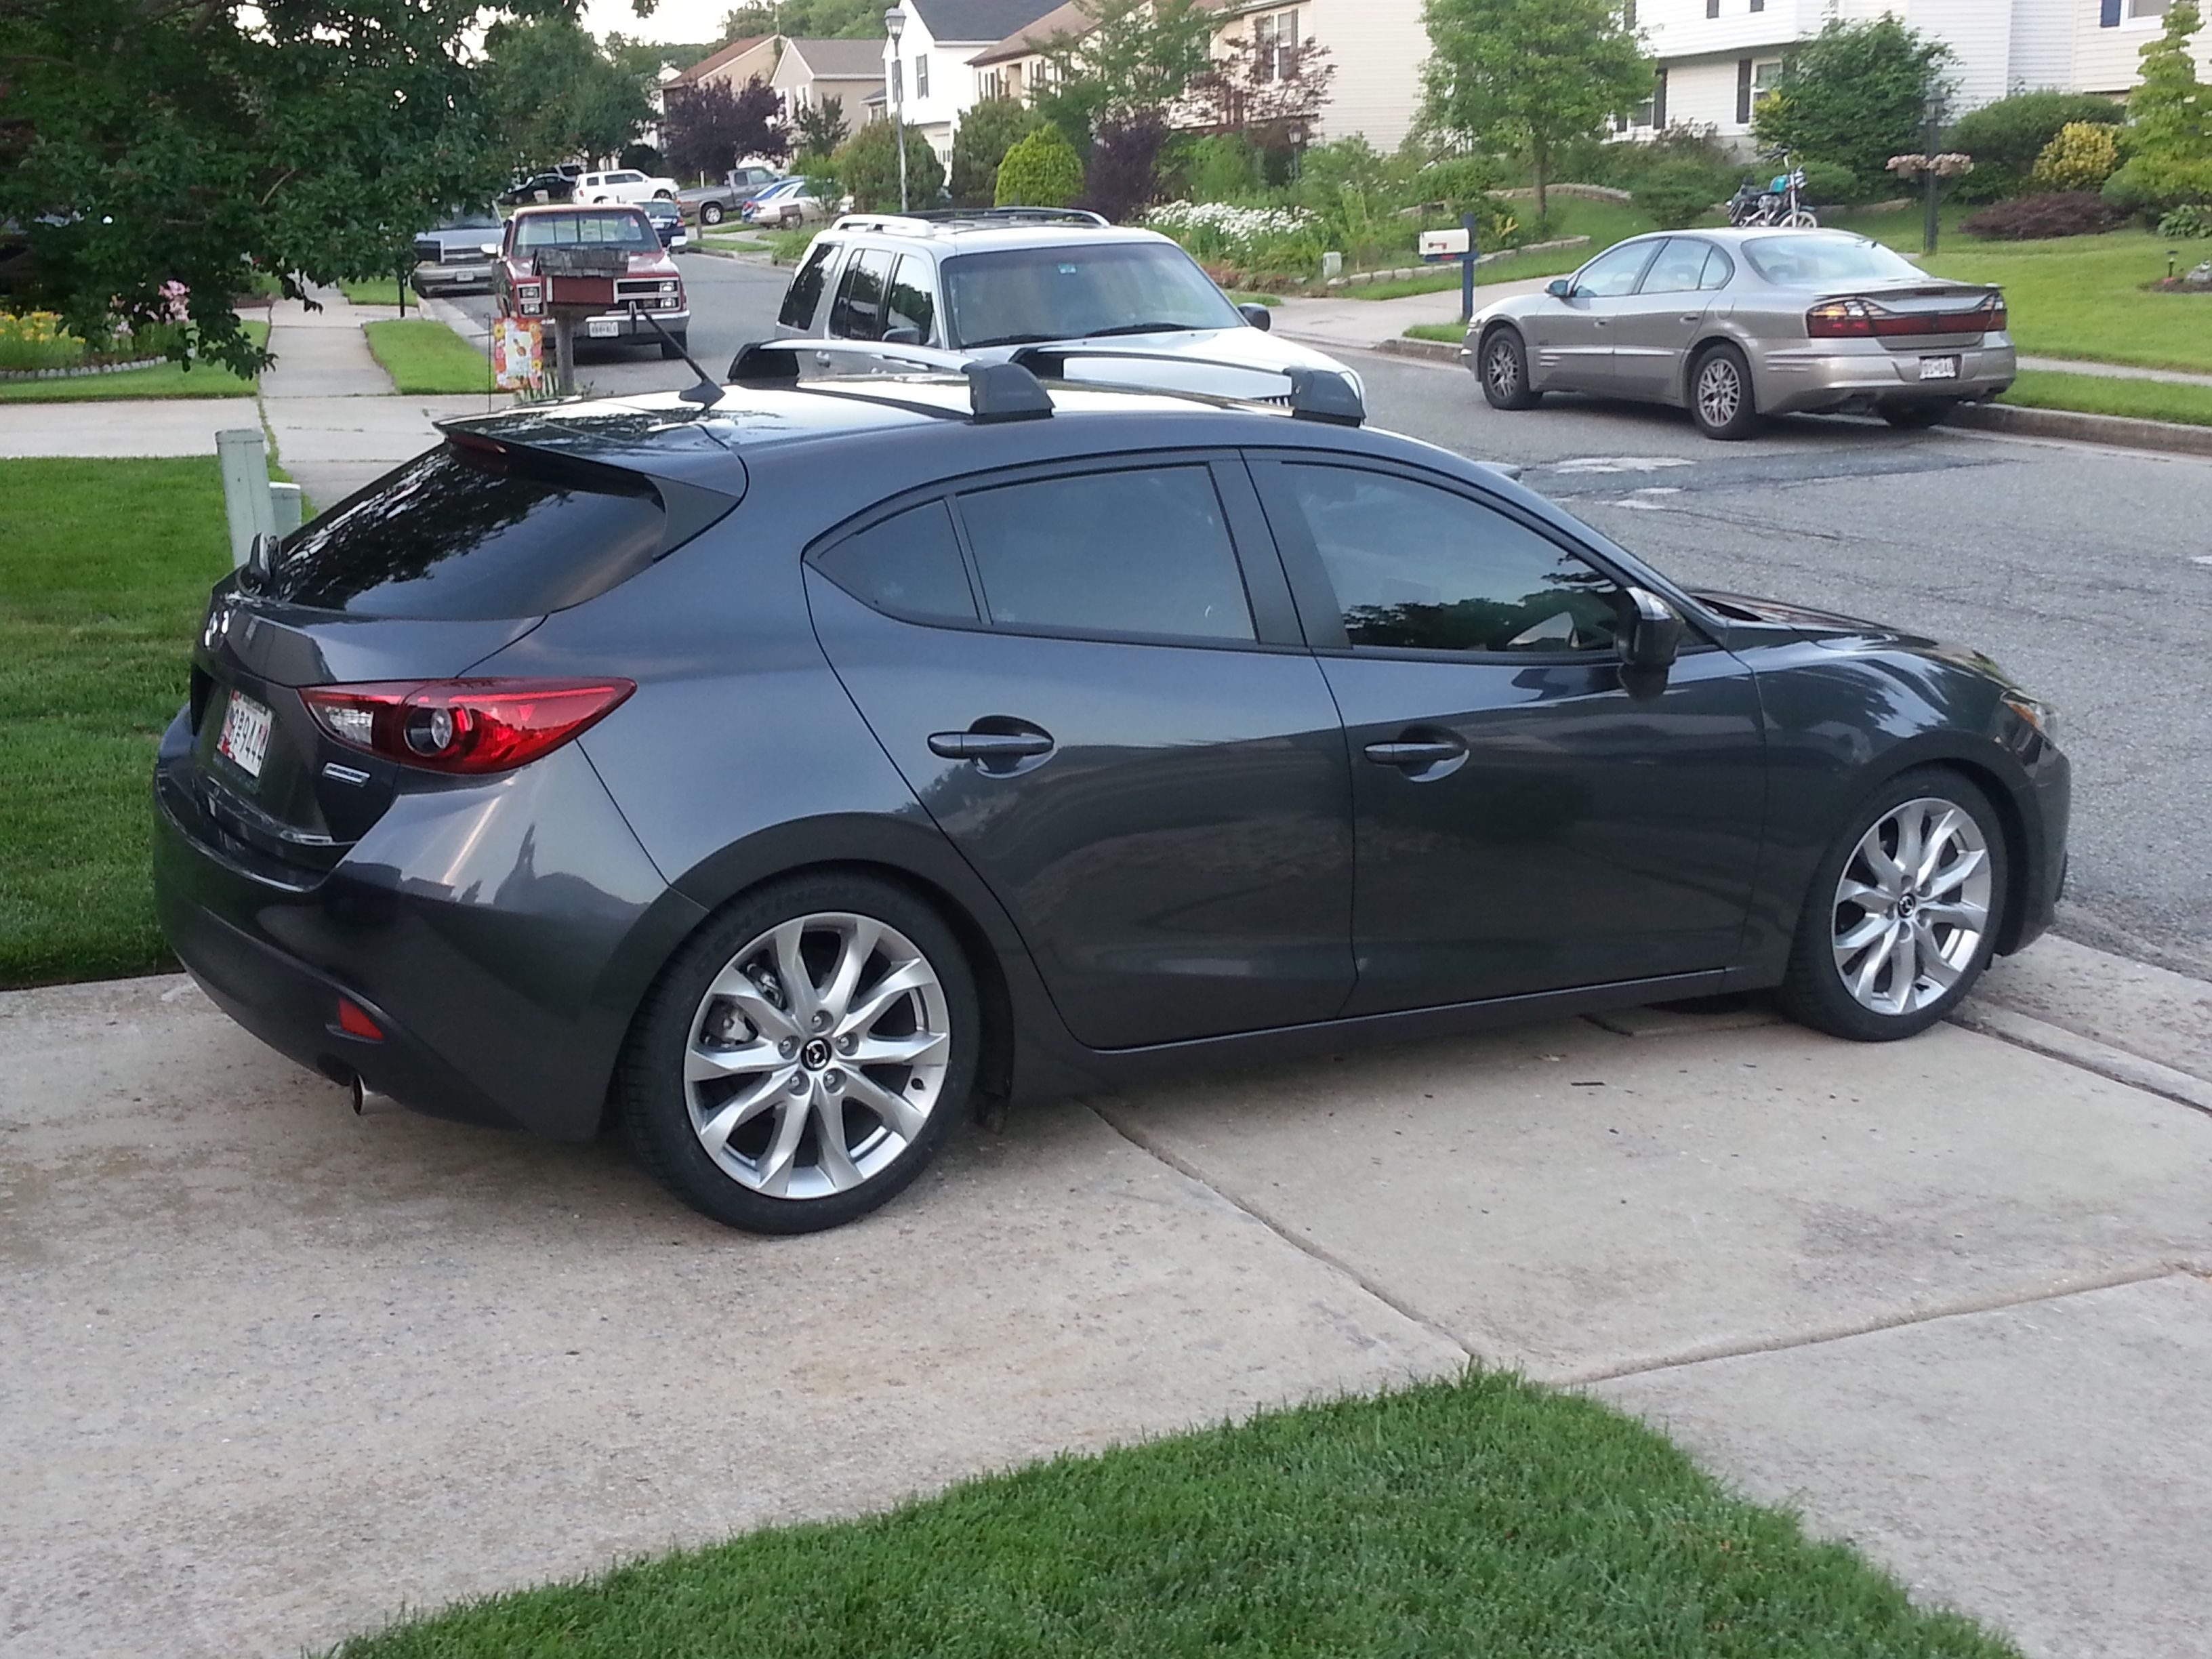 Roof Racks for my Mazda3   Things I'd Like To Own ...